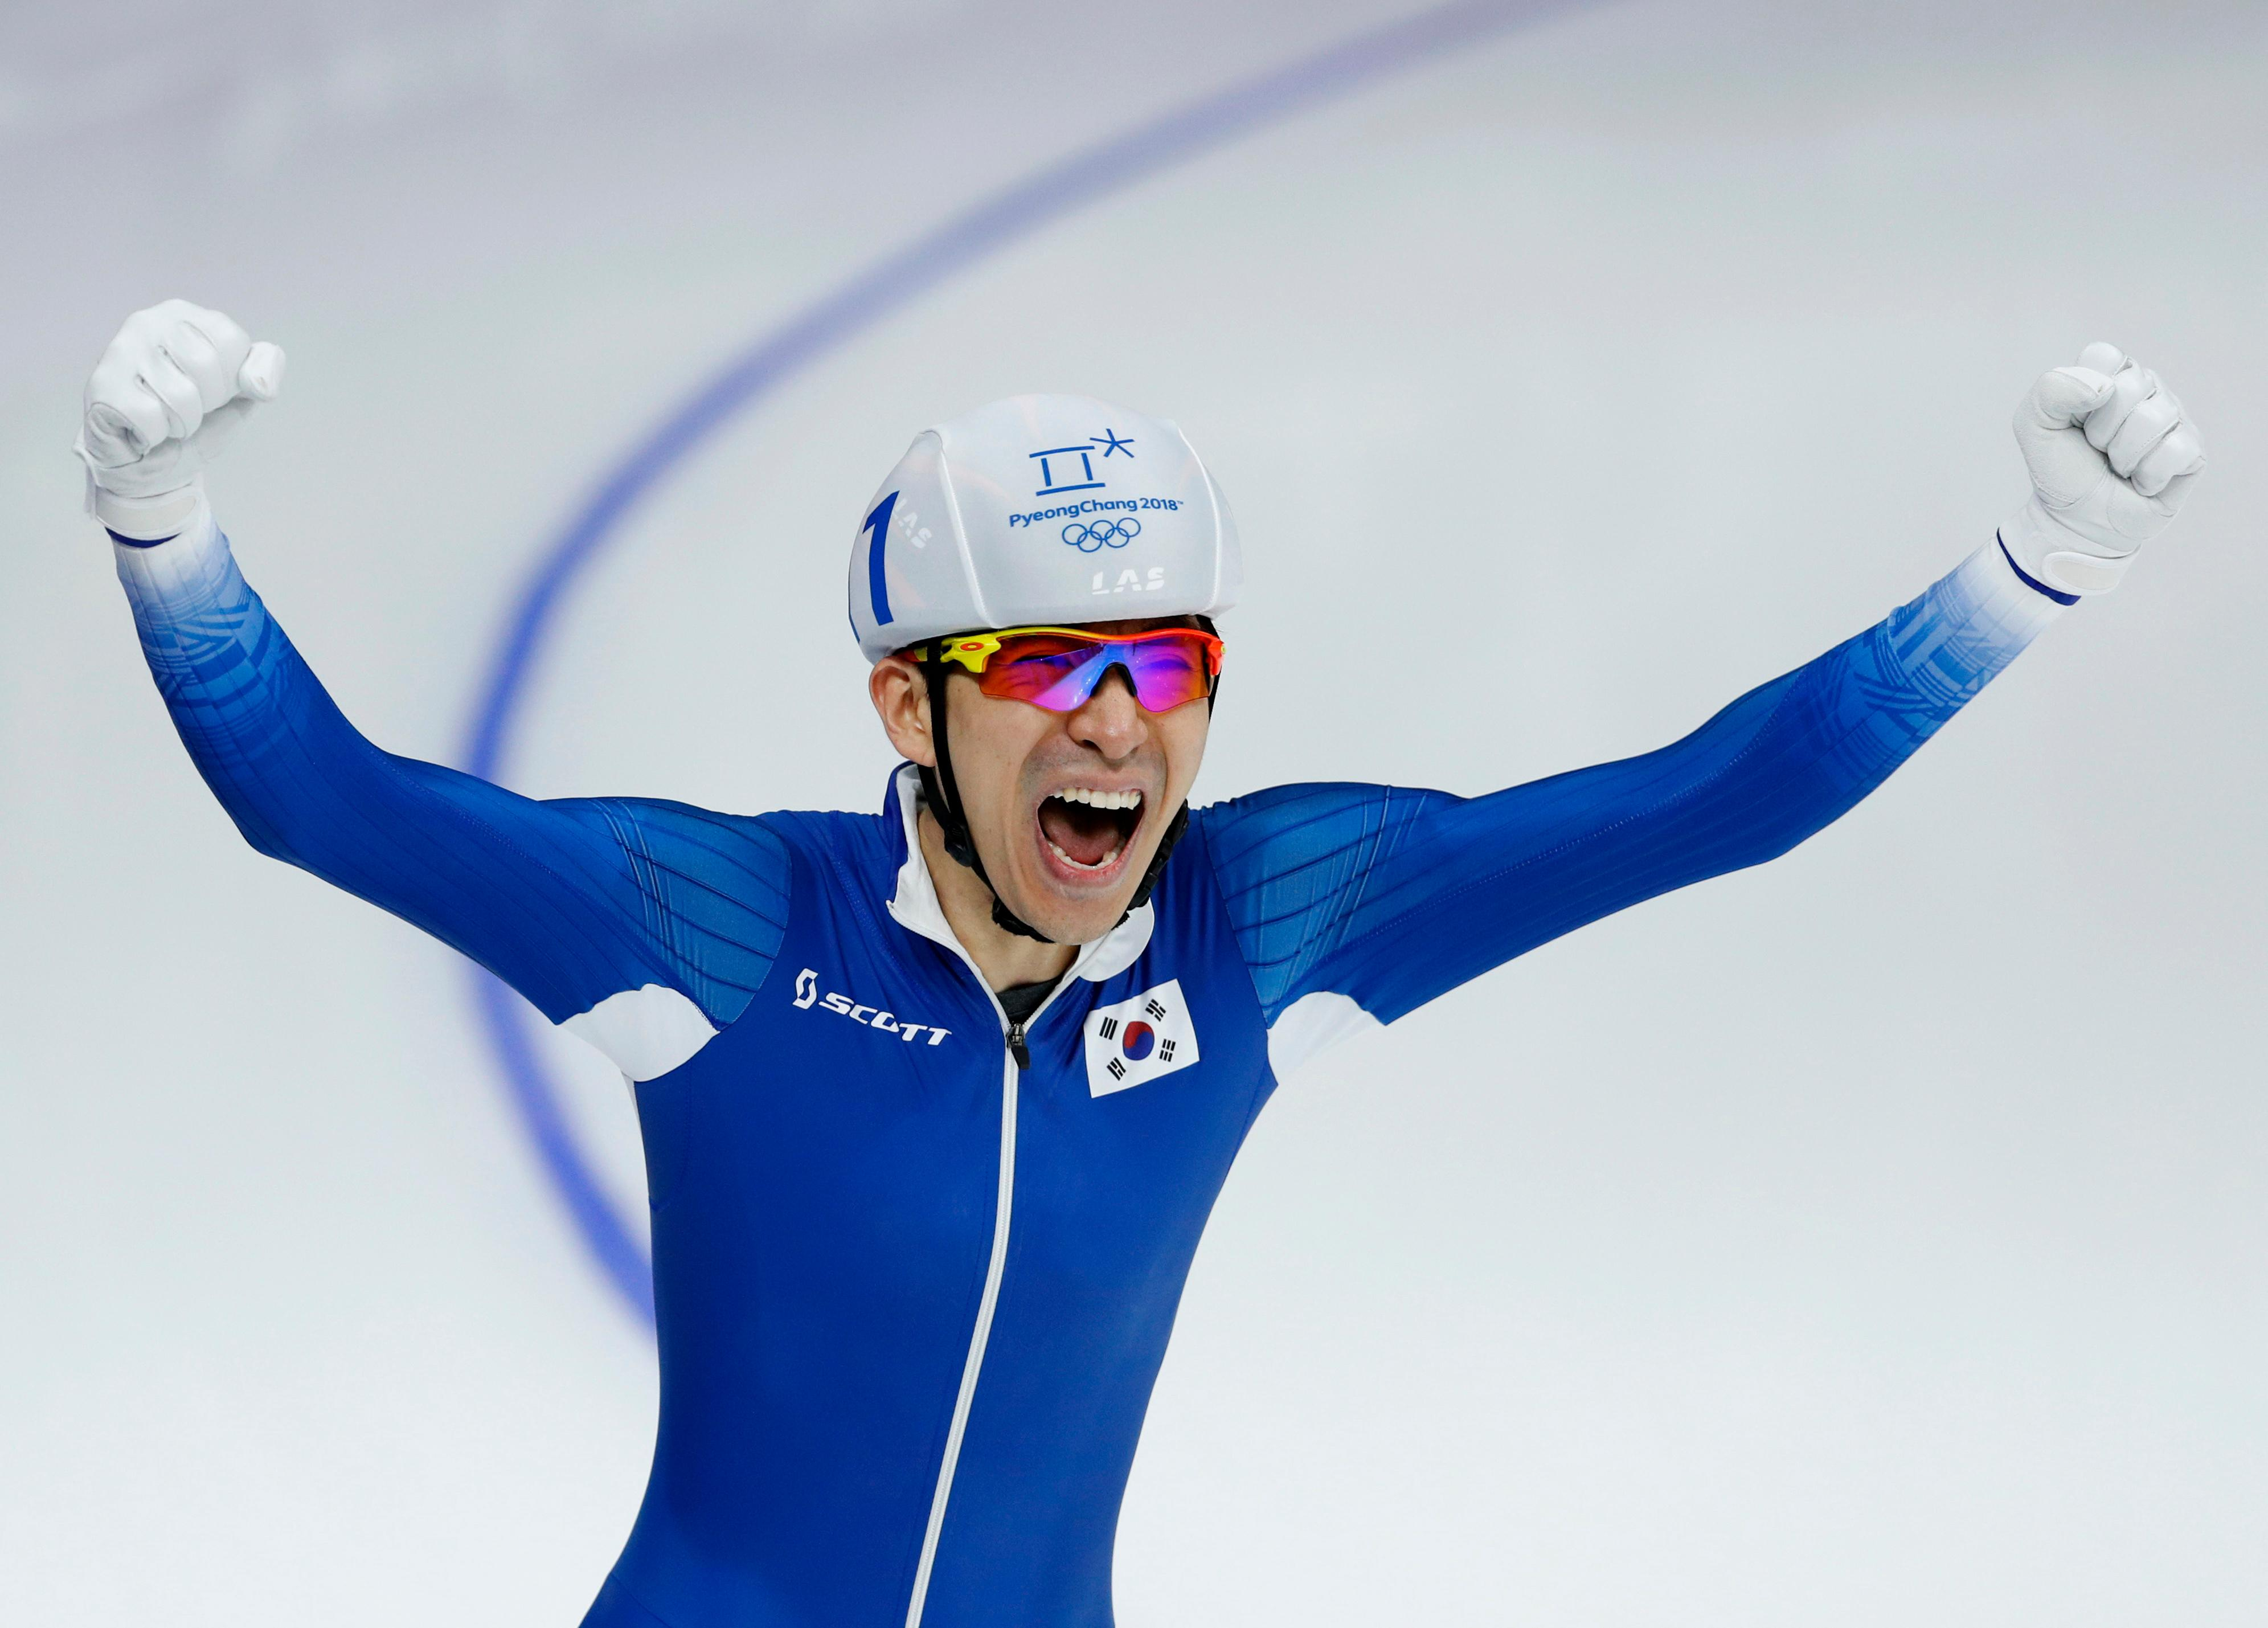 Gold medalist Lee Seung-hoon of South Korea celebrates after the men's mass start final speedskating race at the Gangneung Oval at the 2018 Winter Olympics in Gangneung, South Korea, Saturday, Feb. 24, 2018. (AP Photo/John Locher)